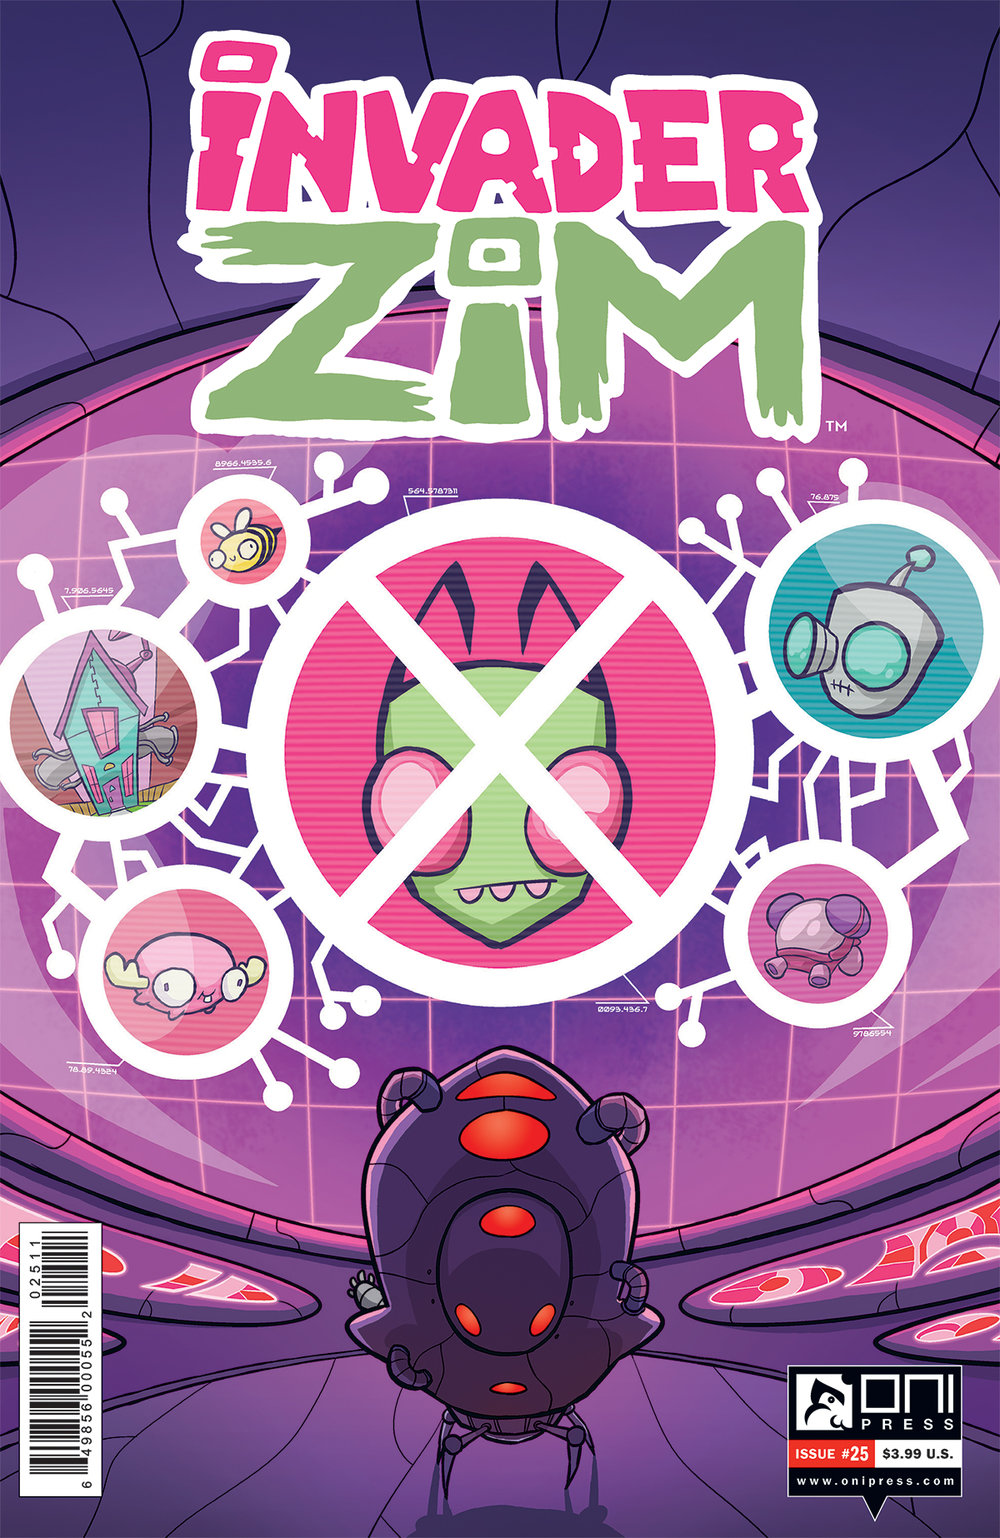 "ALRIGHT CREEPS! ZIM 25 comes out today and it is my last issue as ""series artist!""     I'm not leaving the series entirely, SO DON'T WORRY. I'll still be doing letters and maybe some colors here and there, oh and I'll draw a cover every now and then (ZIM won't let me go THAT easily) but my time on regular art chores has come to an end.     After 12 issues it's time someone else did the heavy lifting (those poor, poor souls) and I'm off to work on some personal projects. (You know, the kind of projects with swords and snow and yelling and axes. Personal stuff.)     Thank you all for your support! (And money. Yay, rent money!)     You're all aces,     -ww"